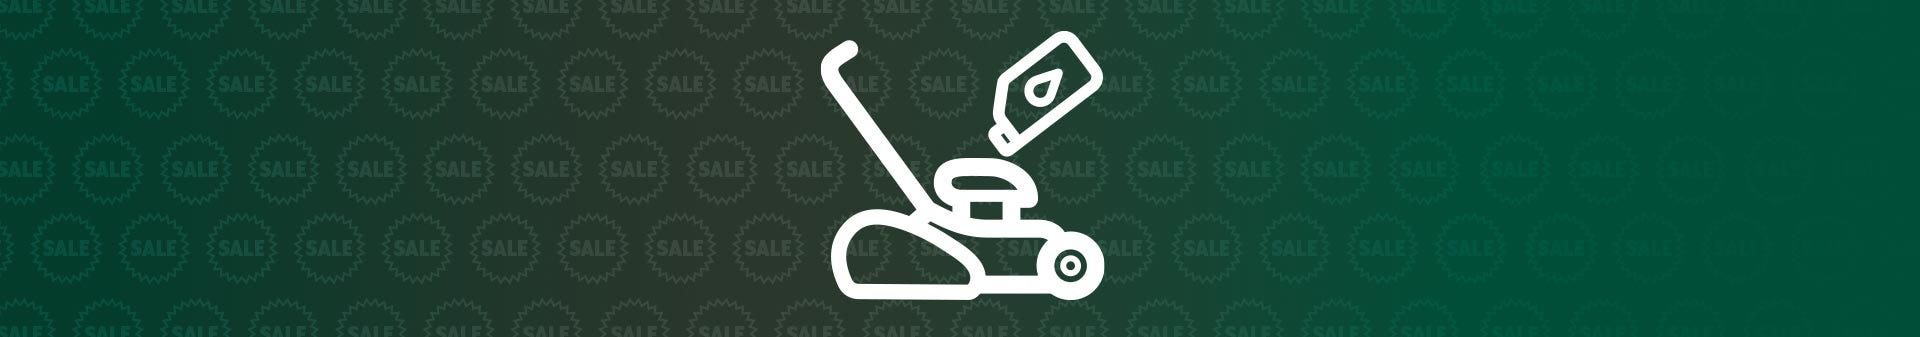 Sale - Roller mowers